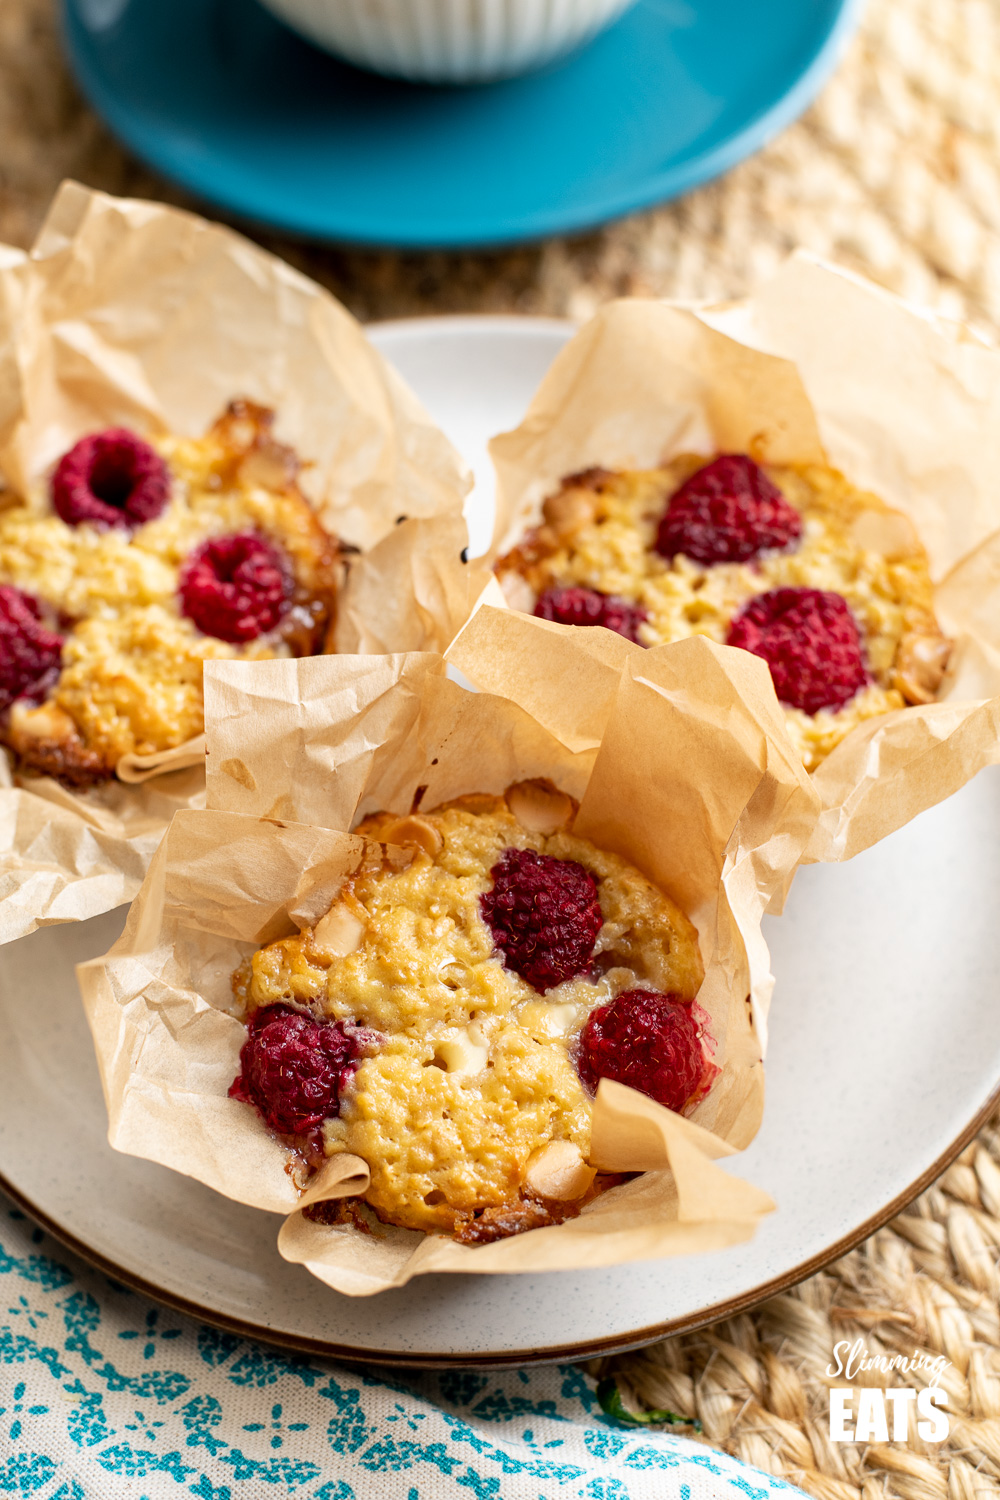 raspberry and white chocolate baked oatmeal in parchment paper on plate with cup and sauce in background